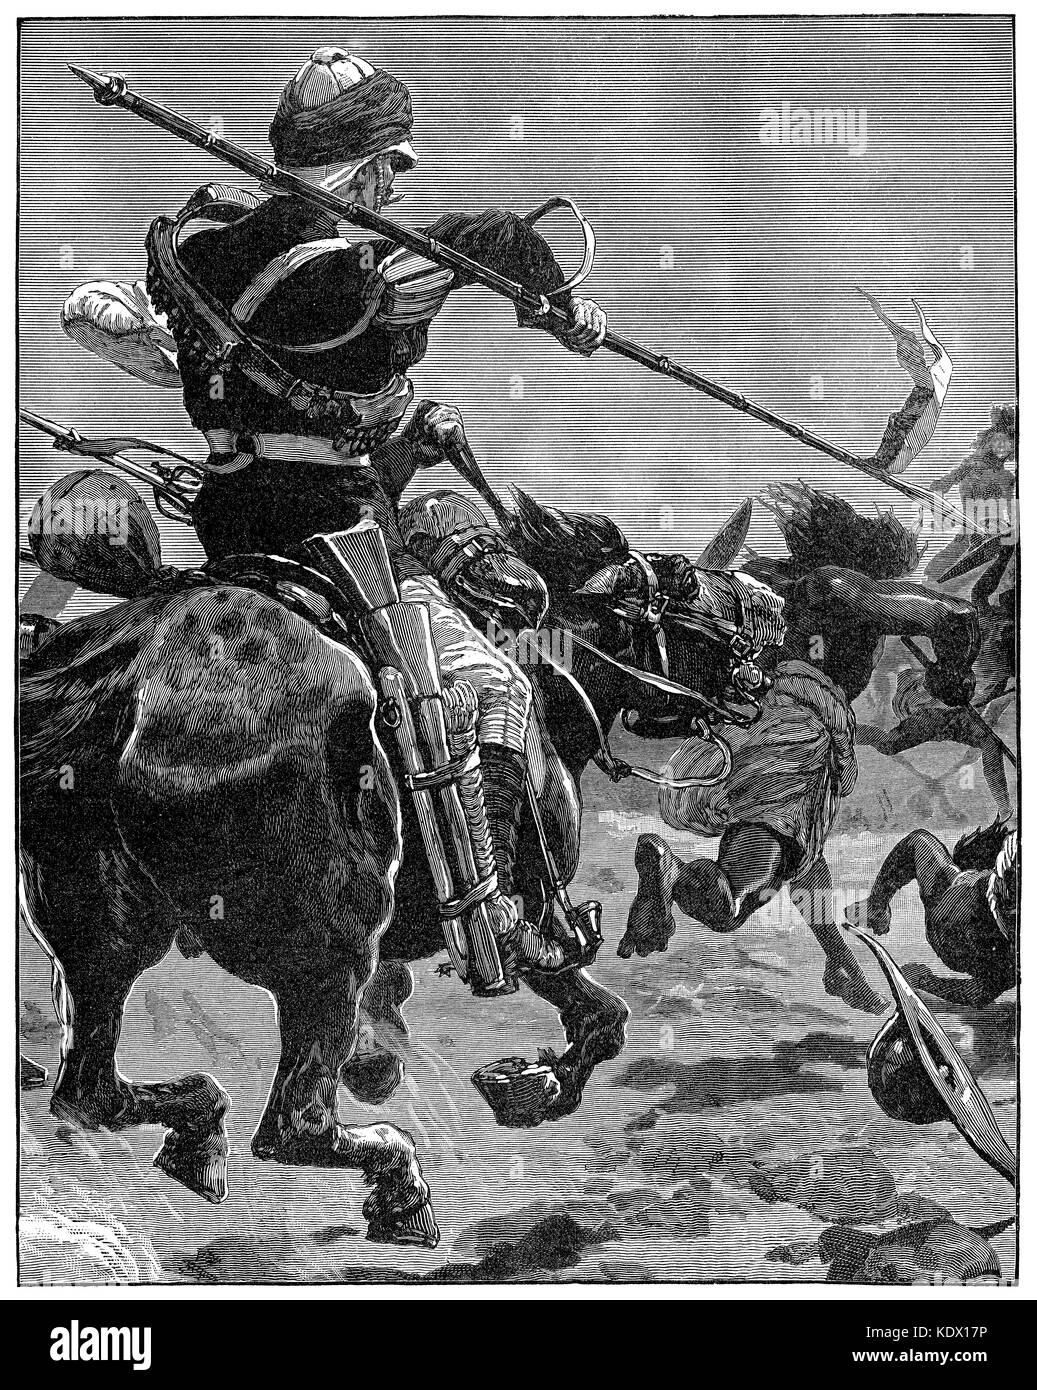 1887 engraving of a British cavalry skirmish in the Sudan. - Stock Image